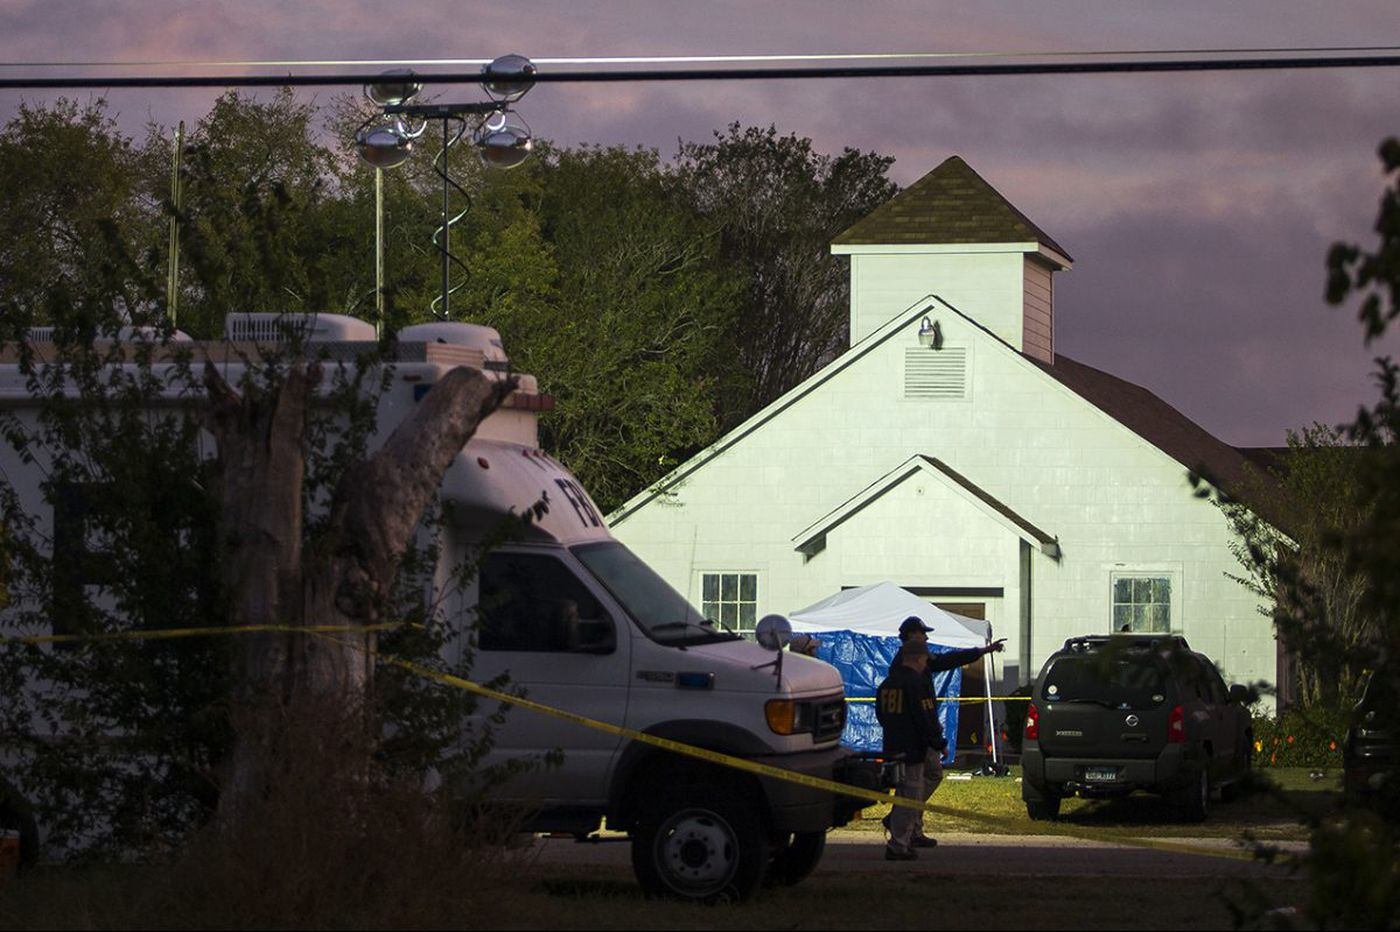 Eight people - across 3 generations - of a single family killed at Texas church